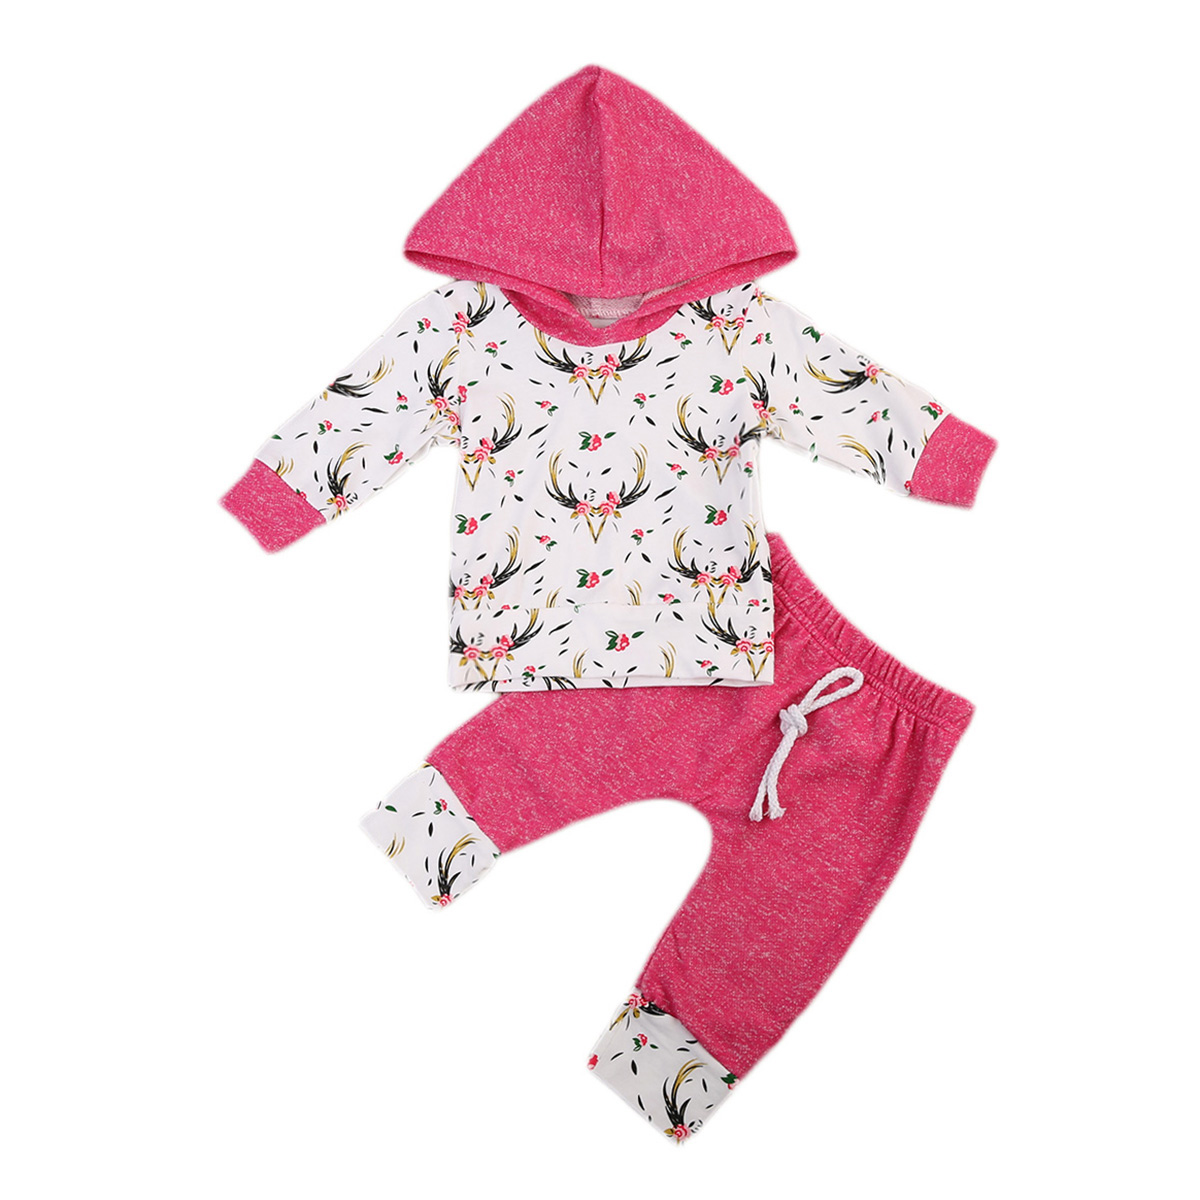 2017 Newborn Infant Baby Girls Clothes long Sleeve Hooded Tops+Long Pants 2Pcs Outfits Autumn Cotton Casual Baby set